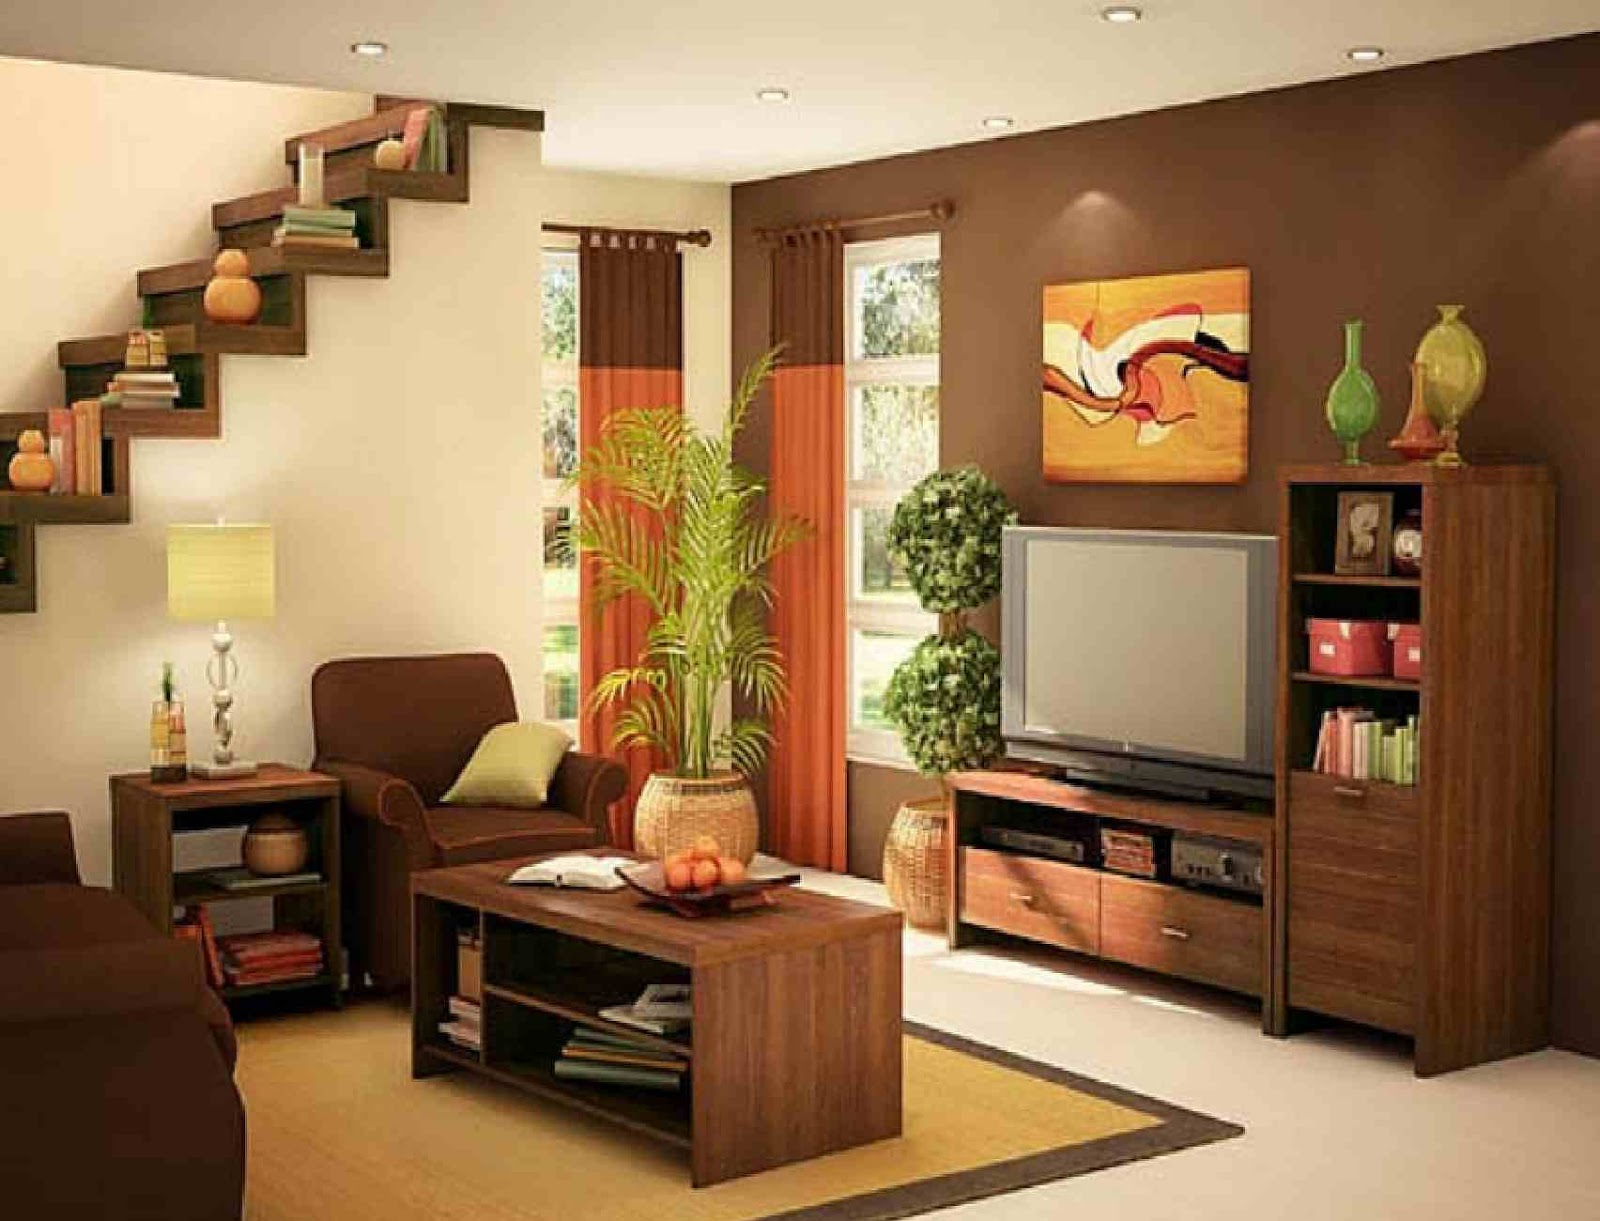 Simple living room designs dream house experience for Simple home design ideas